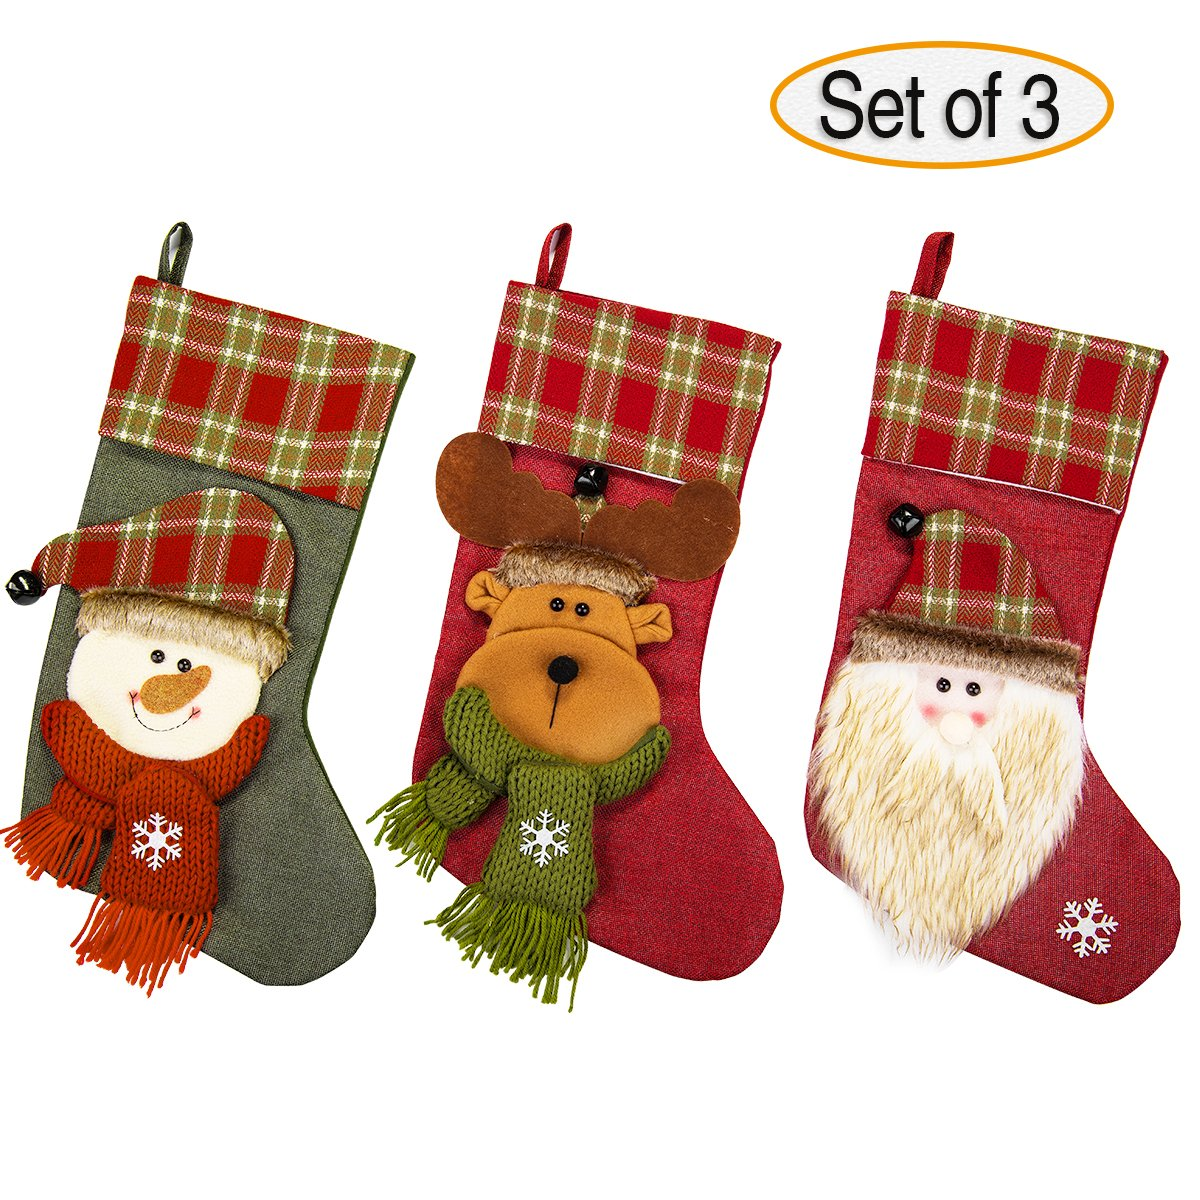 NONZERS Lovely Christmas Stockings-Classic Christmas Stockings, 3 Pcs of Xmas Gift Candy Bag, Santa Snowman Reindeer Toys Stockings, 3D Applique Style Christmas Stockings Decoration for Kids (17.7Lx7.5W)